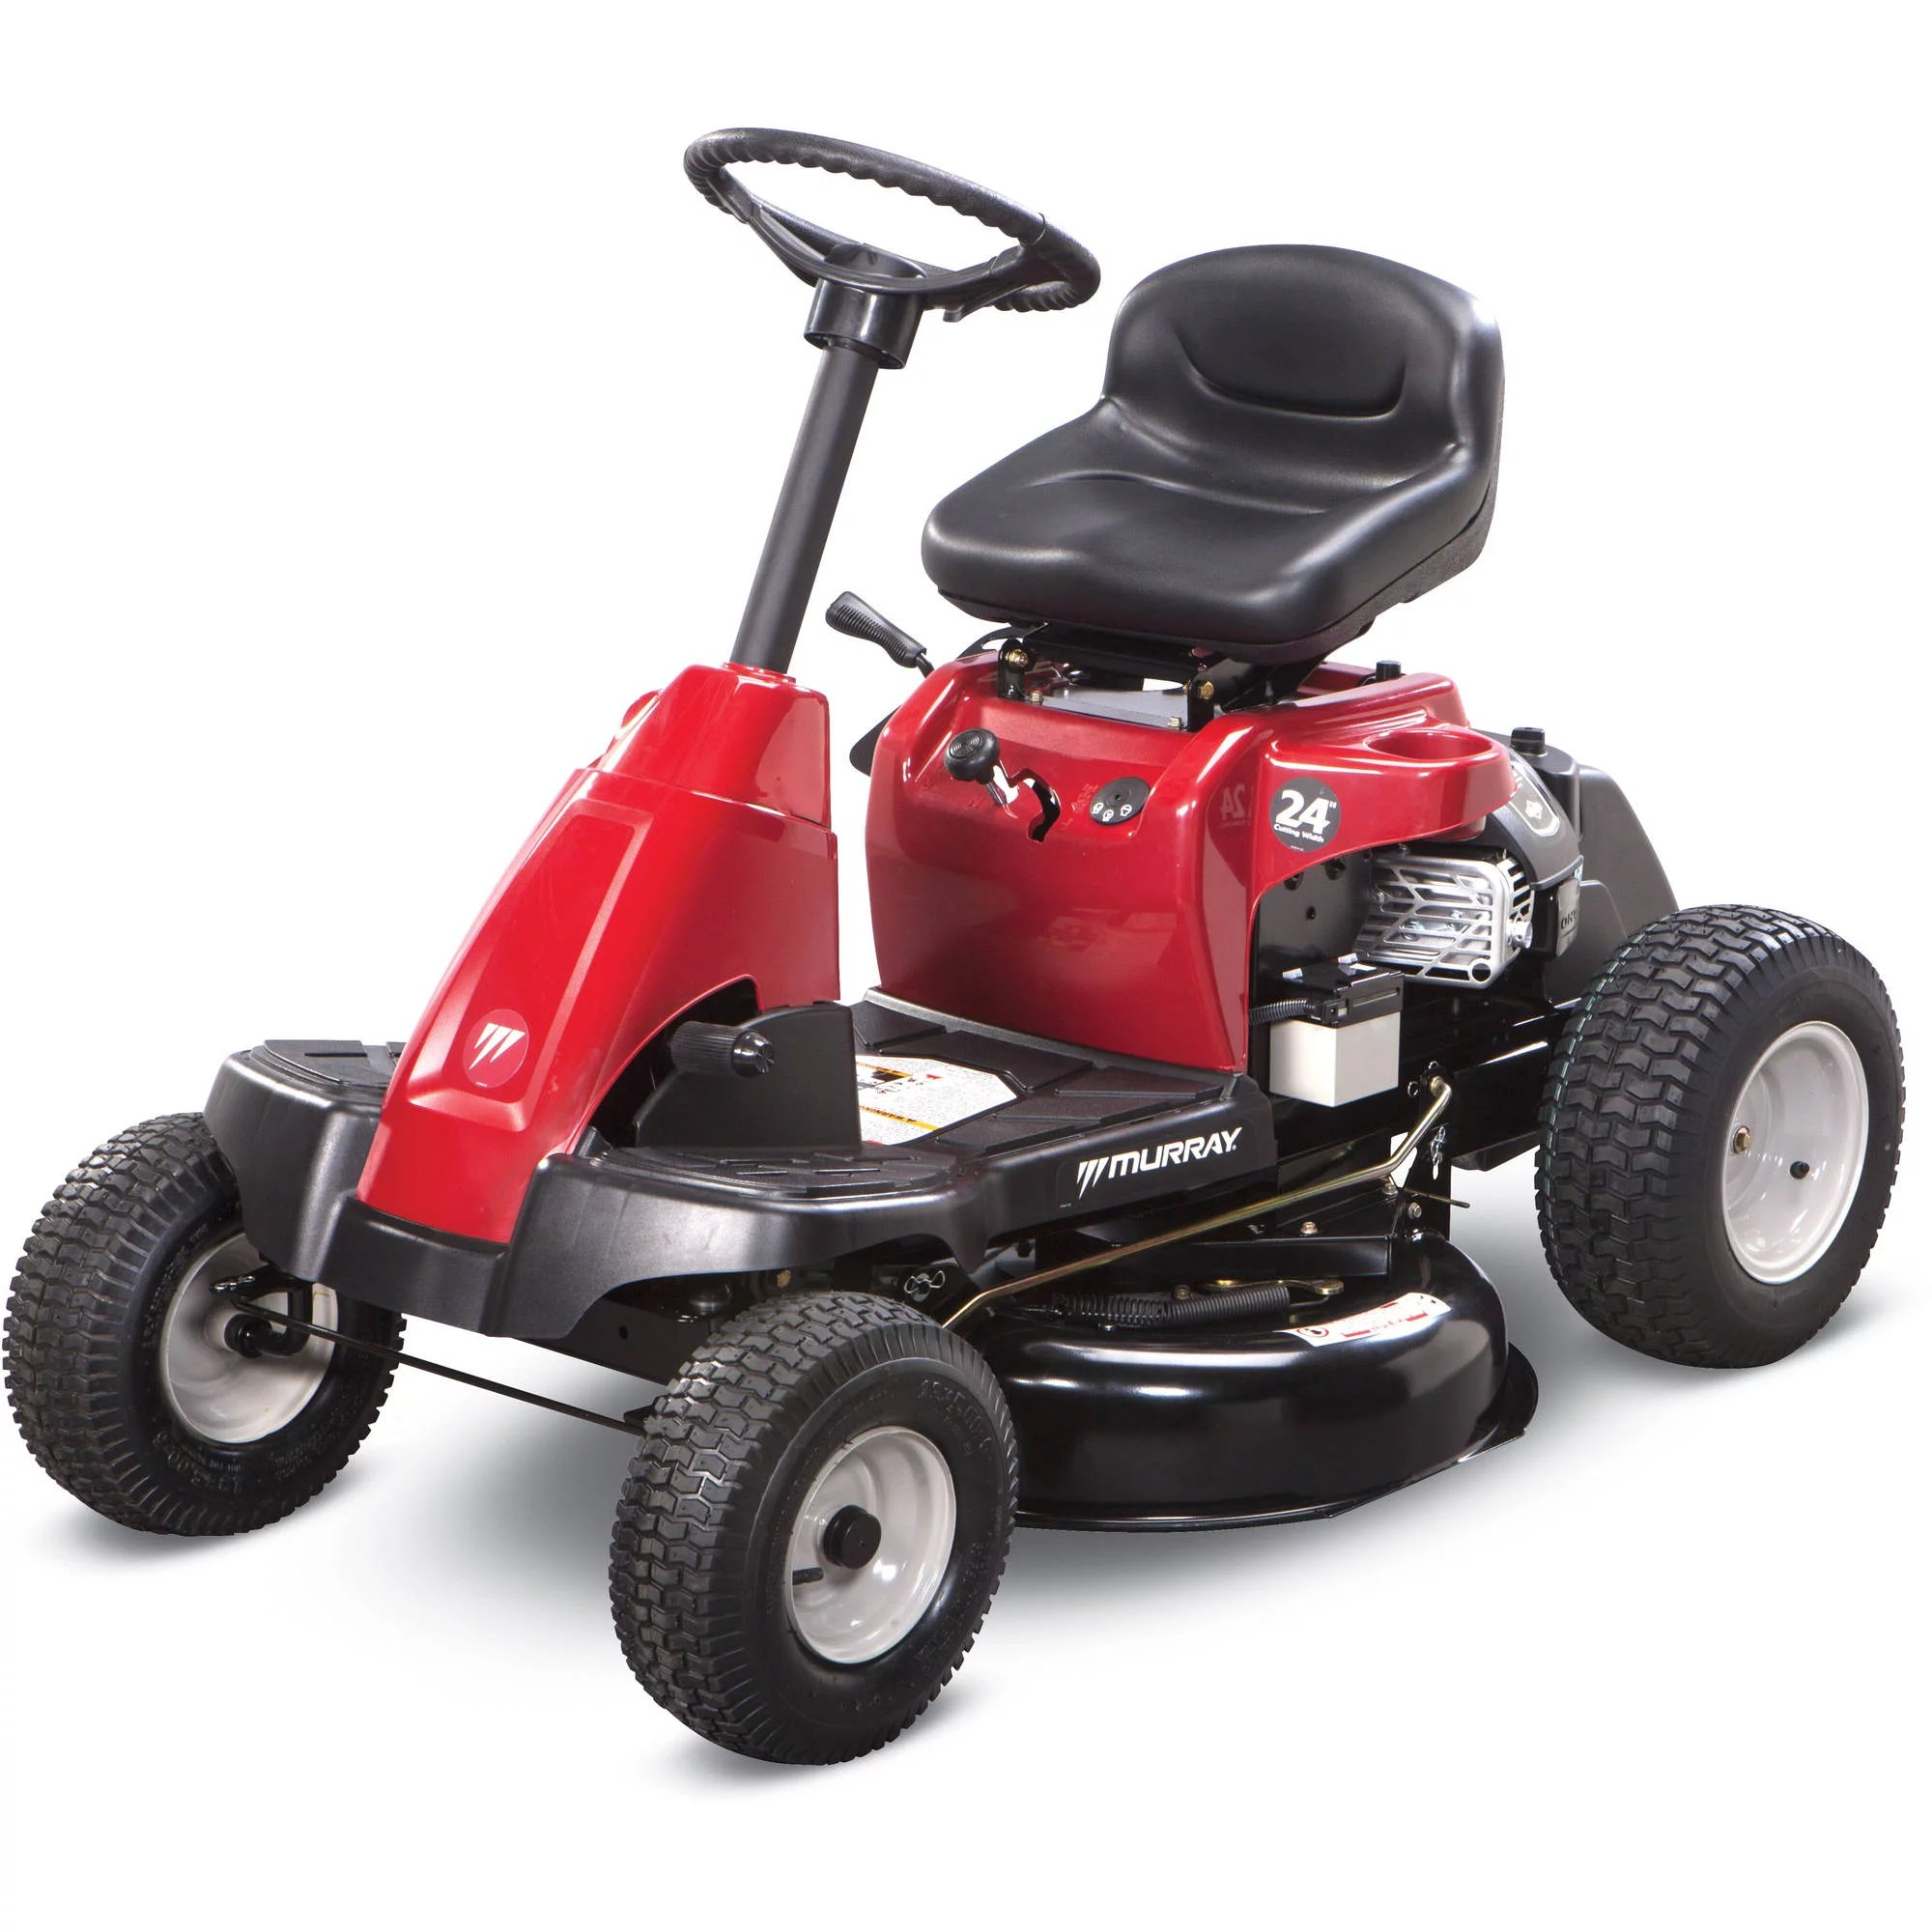 small resolution of murray 24 rear engine riding mower with mulch kit walmart com murray rider wiring harness